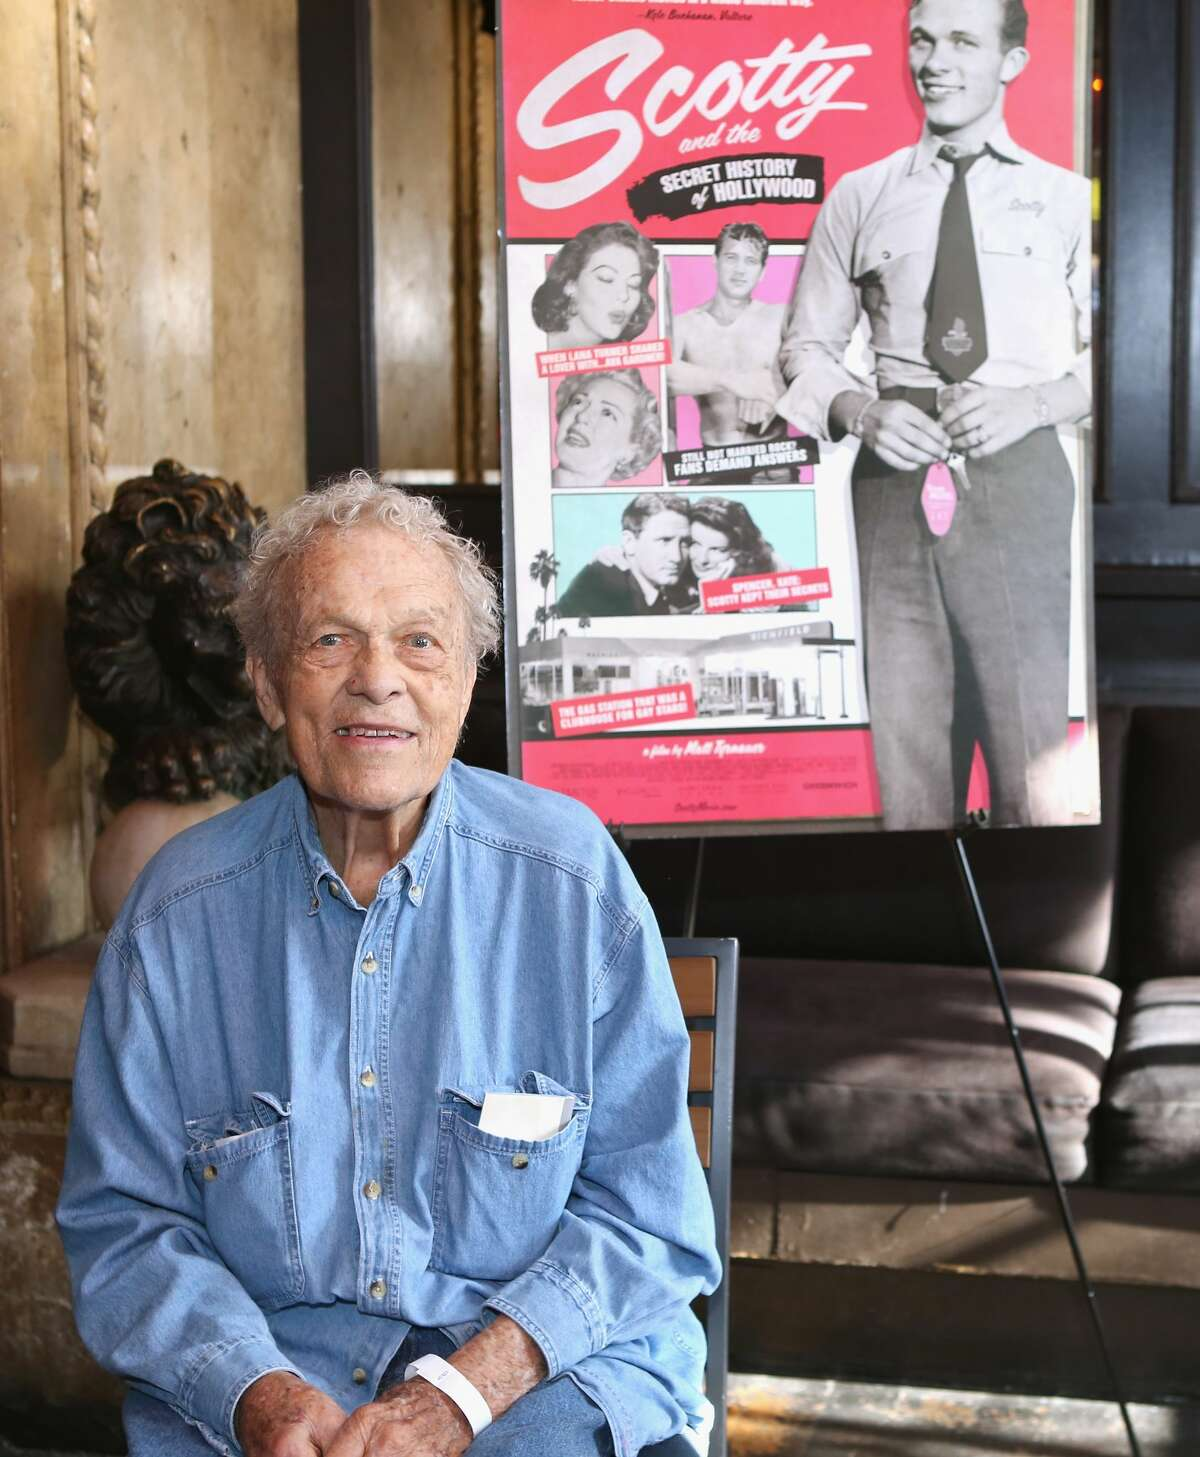 The City of West Hollywood honors Hollywood legend Scotty Bowers at The Abbey on July 25, 2018.